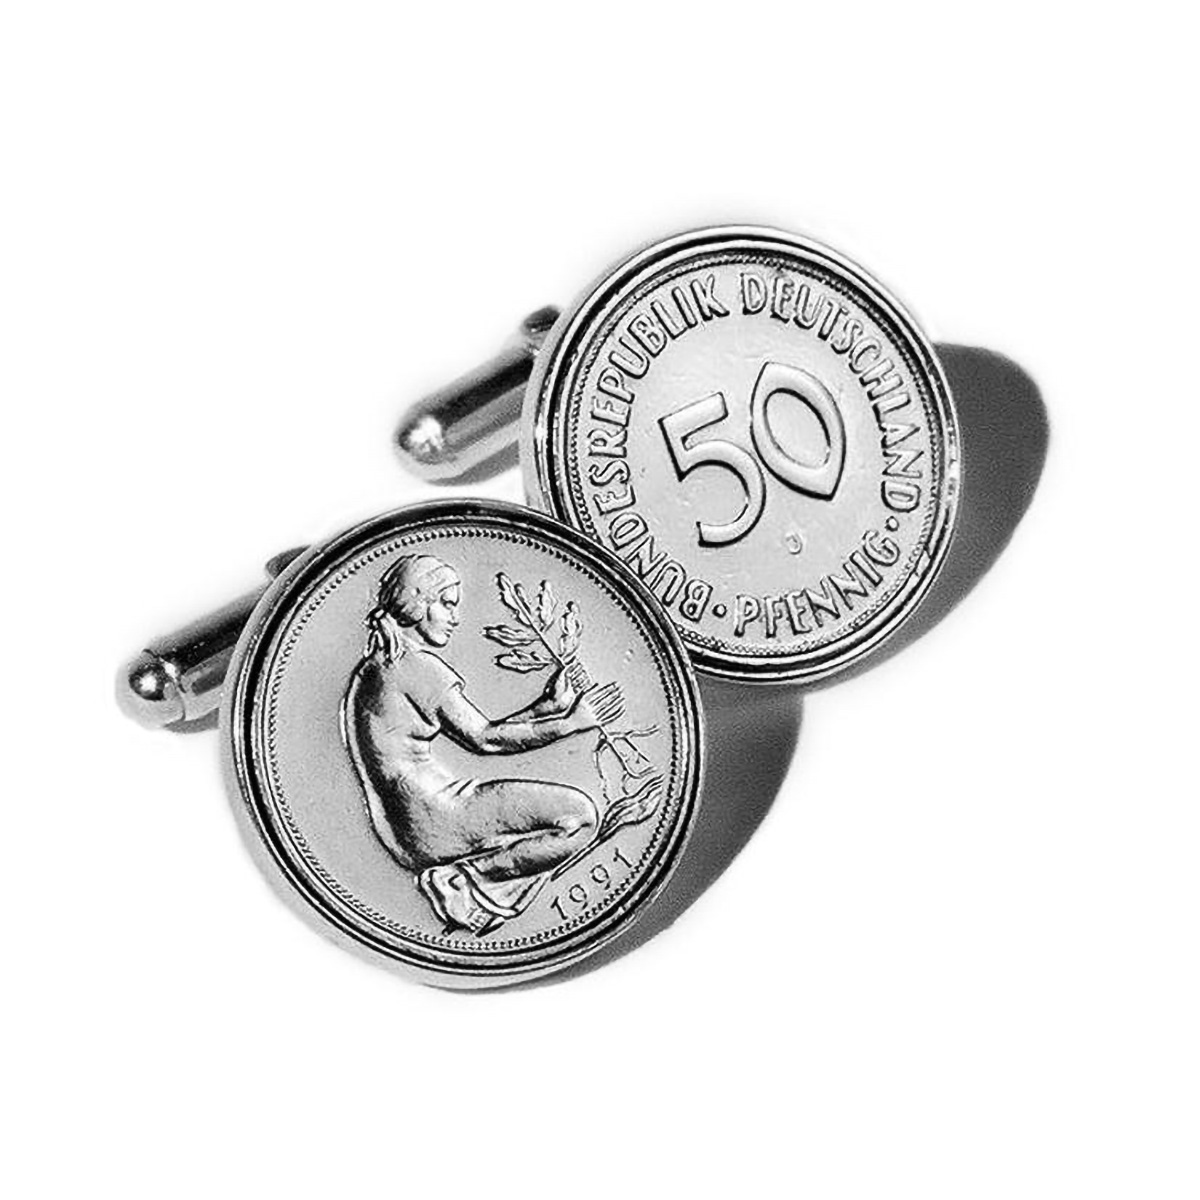 Solid silver coins